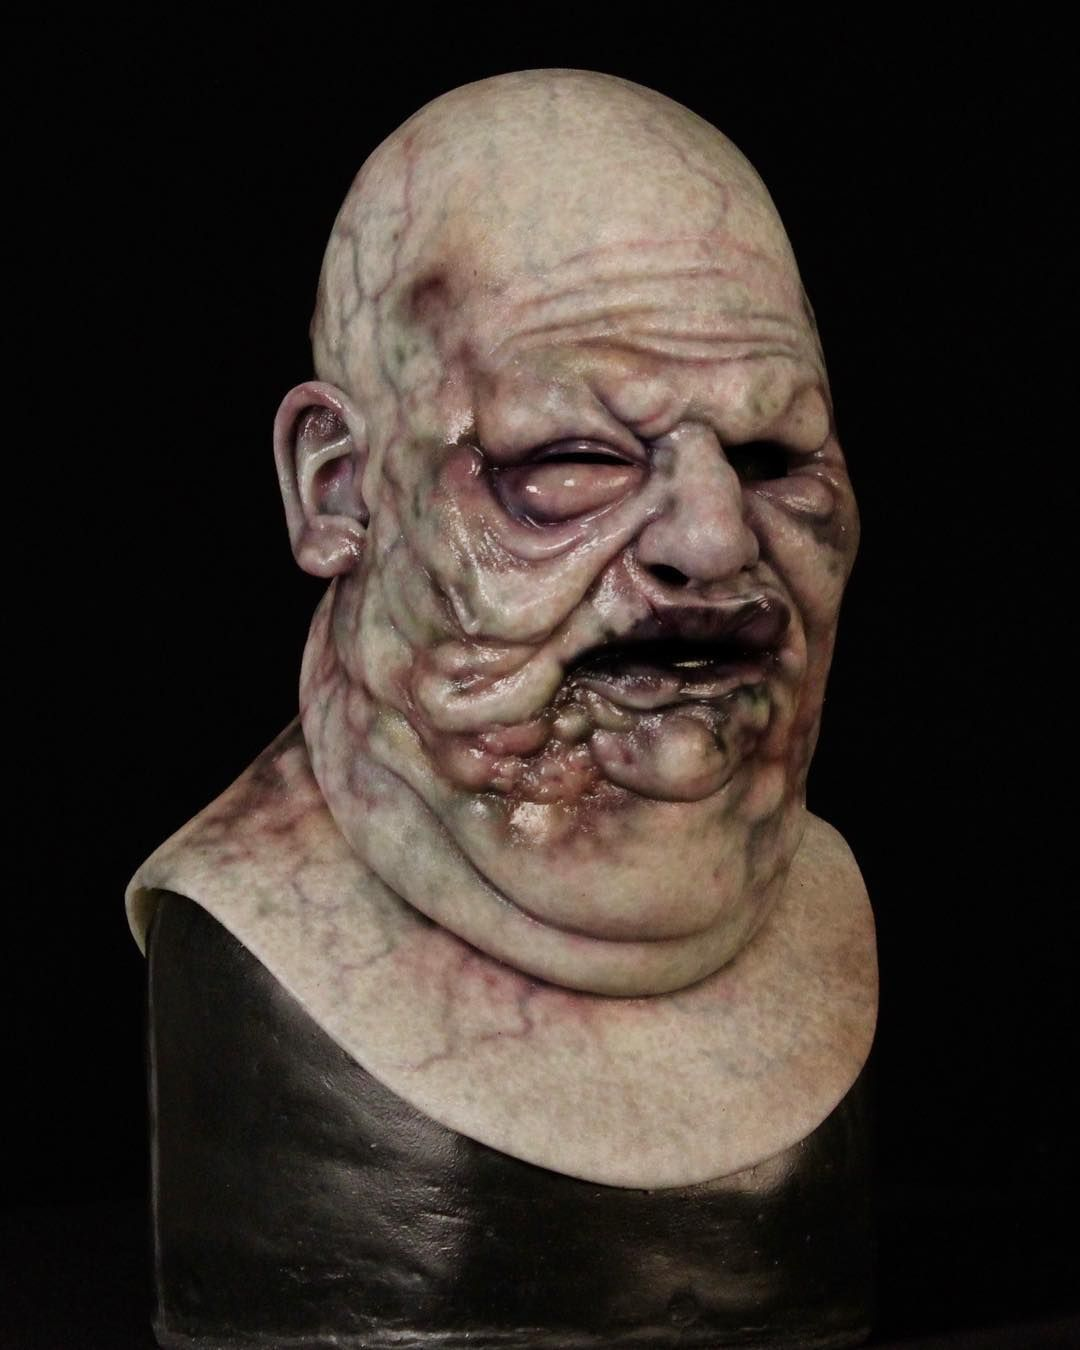 L Image Contient Peut Etre 1 Personne Immortal Masks Horror Art Sculpture Art The world's leading silicone mask and silicone creature company from san dimas, ca. immortal masks horror art sculpture art